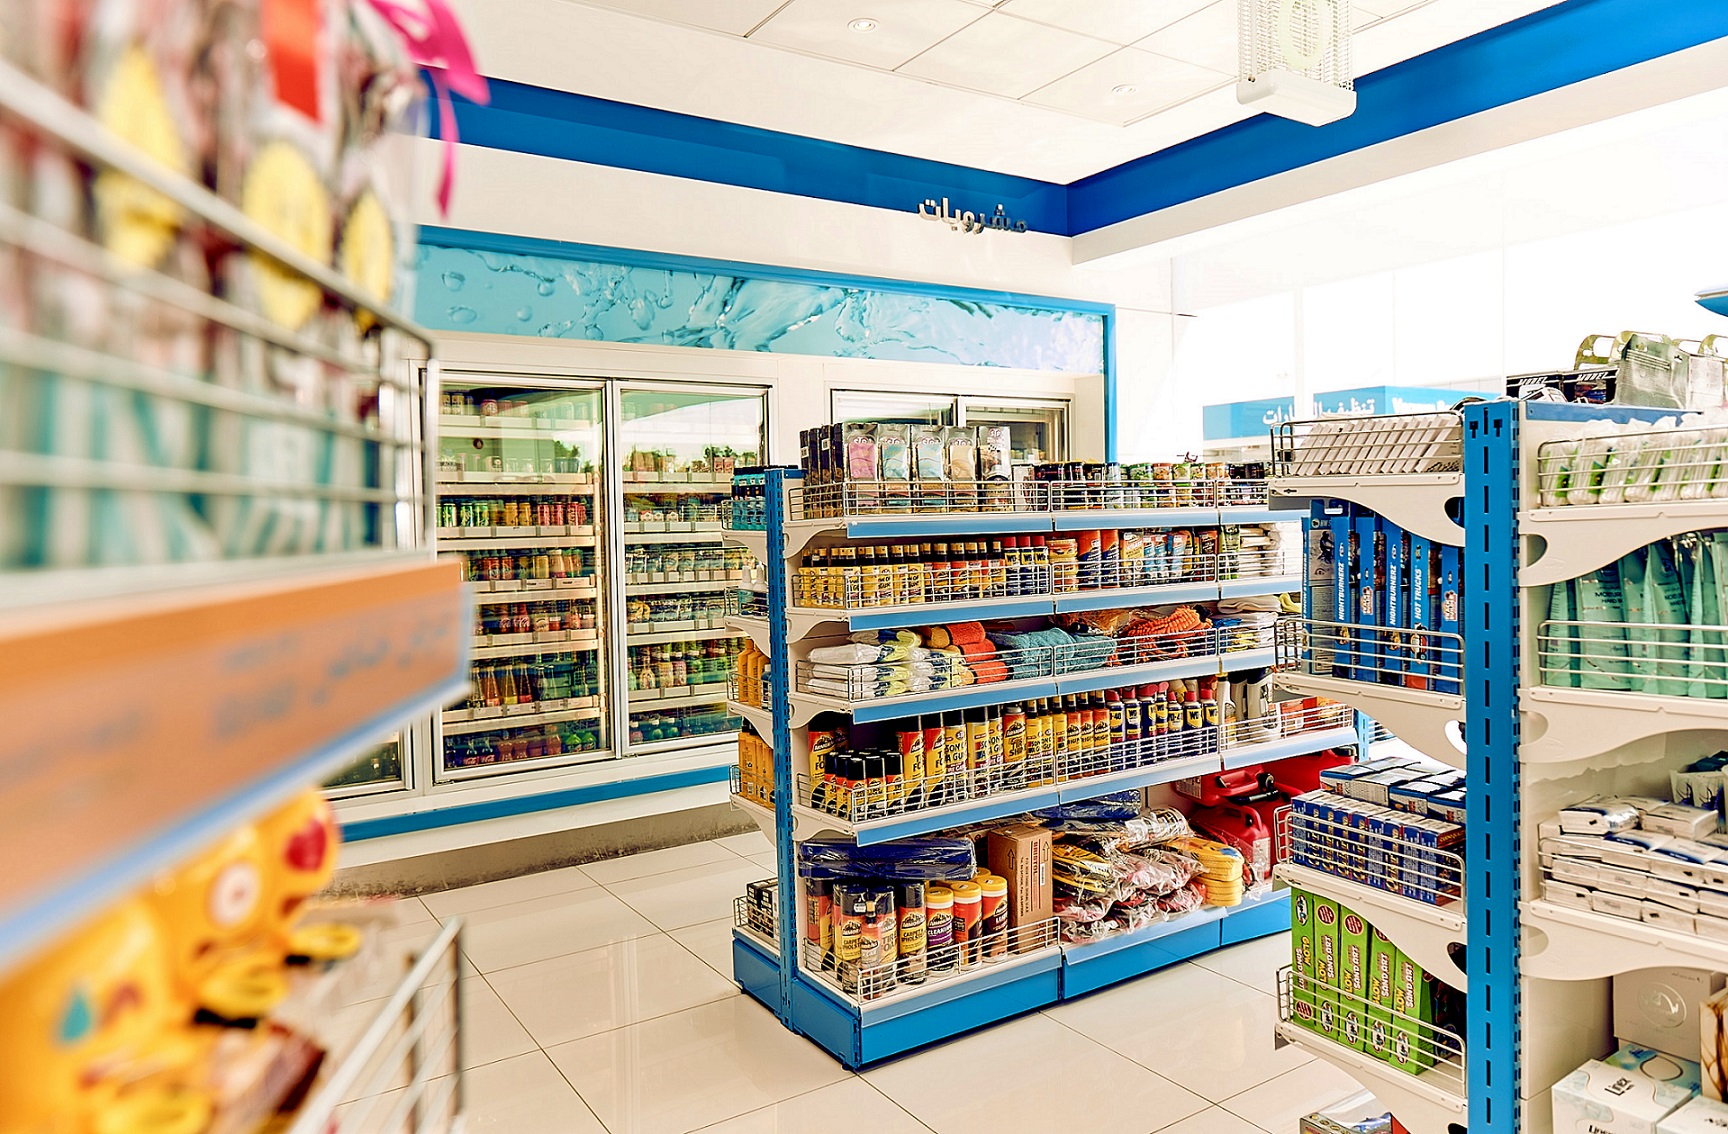 French grocer Géant will be back in the UAE - Future of